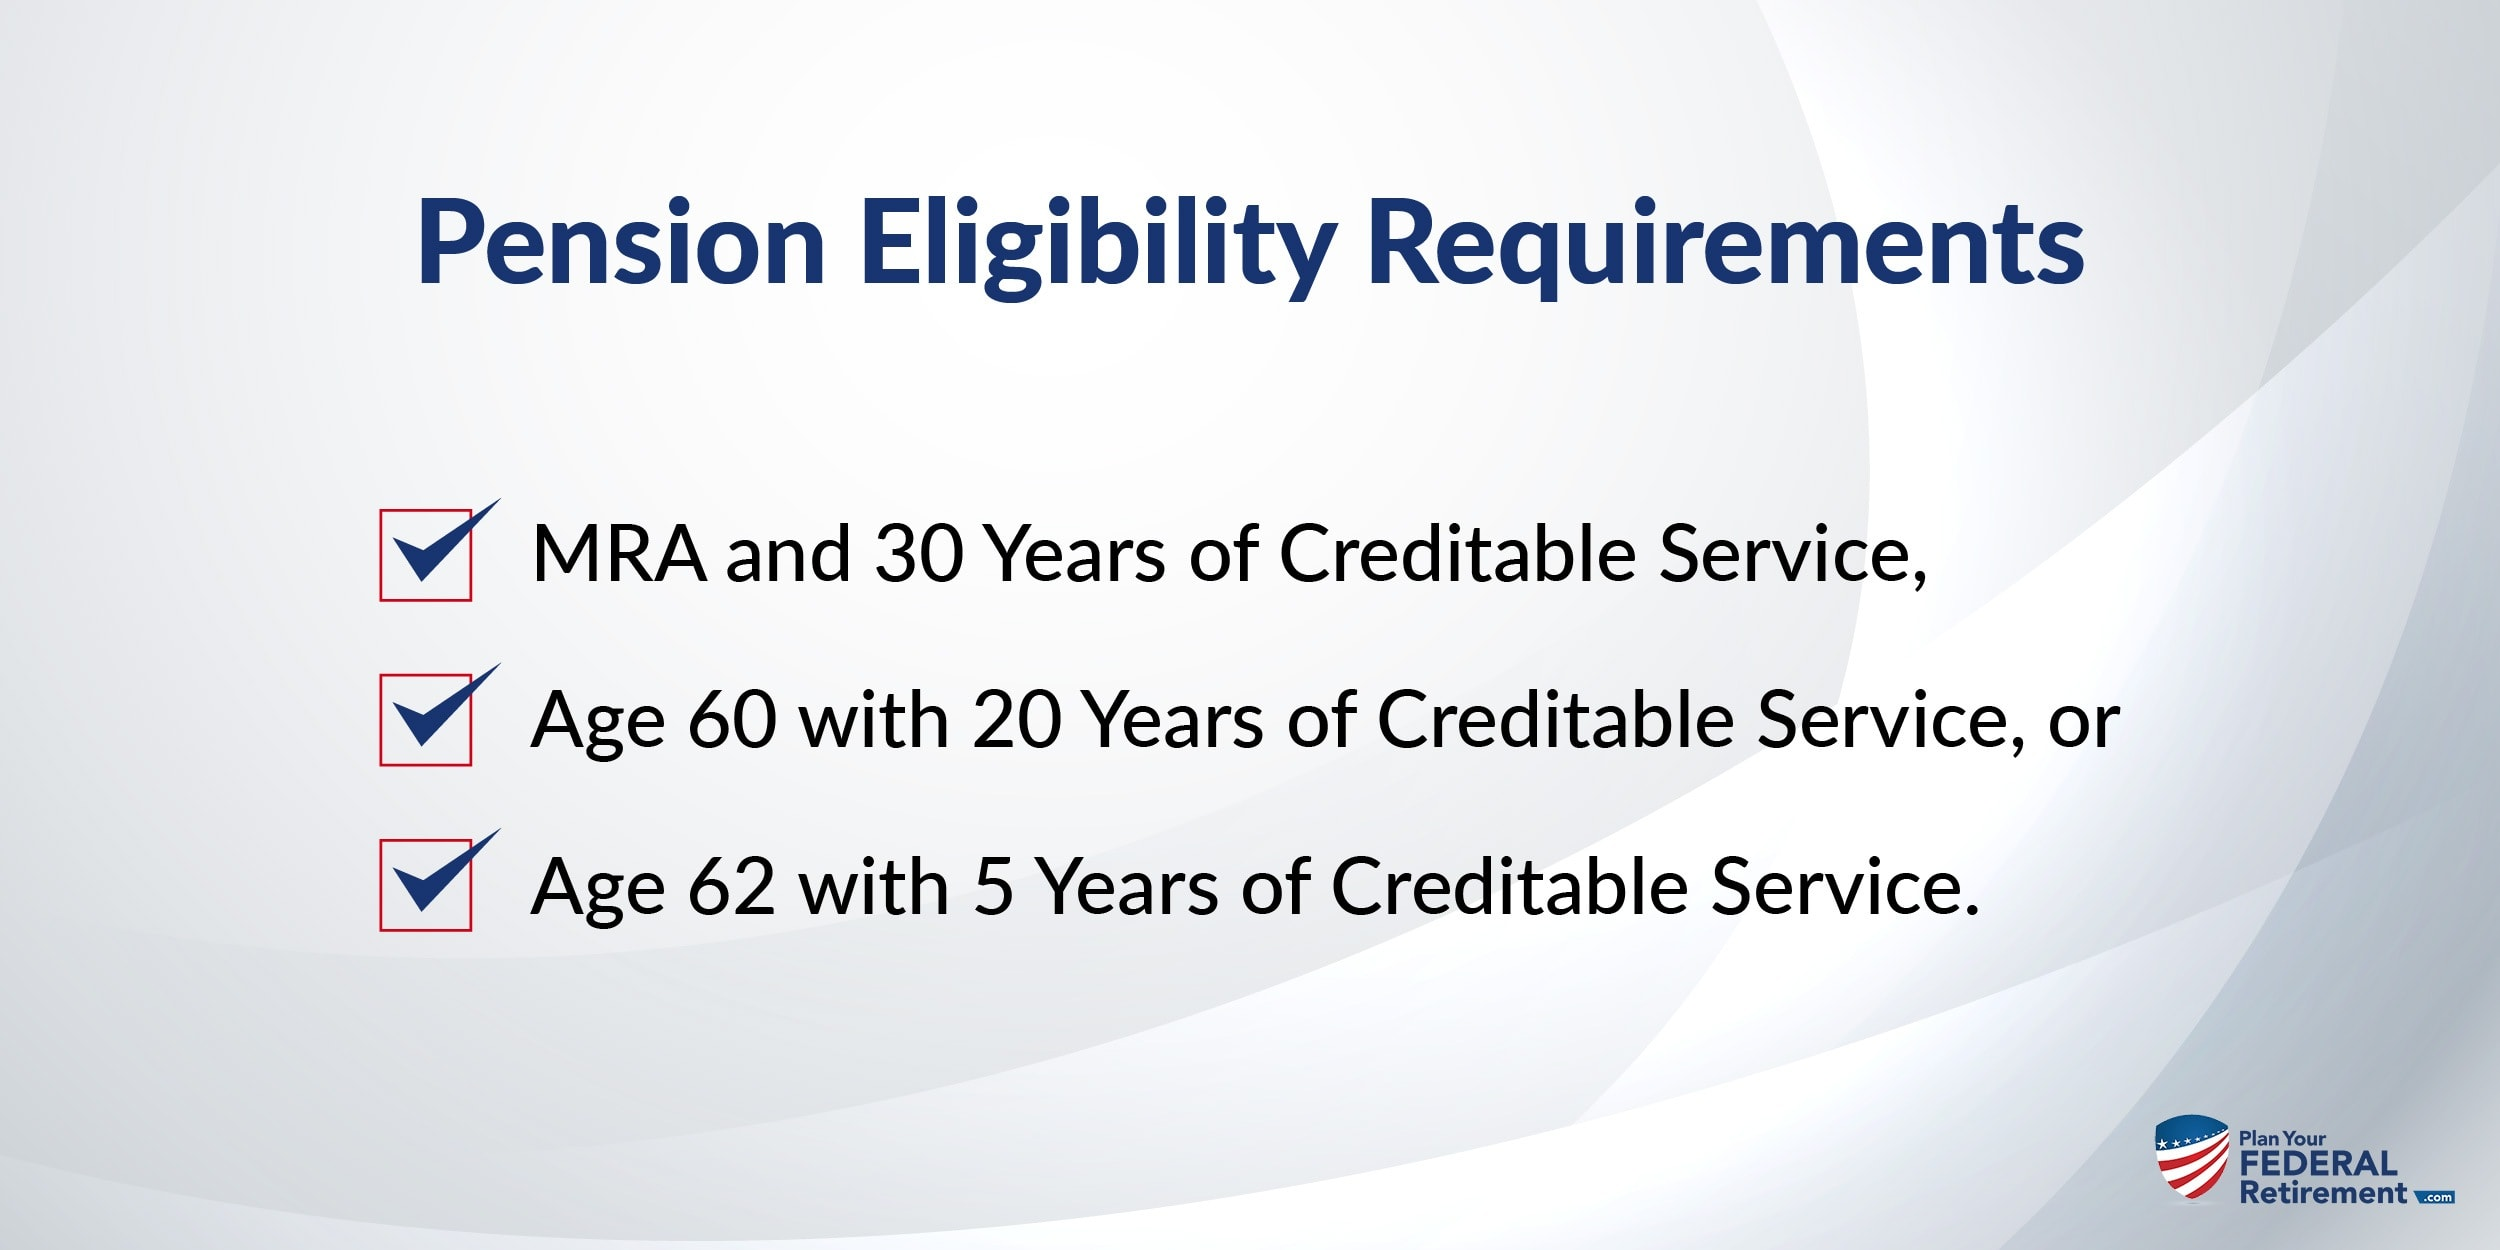 Pension Eligibility Requirements